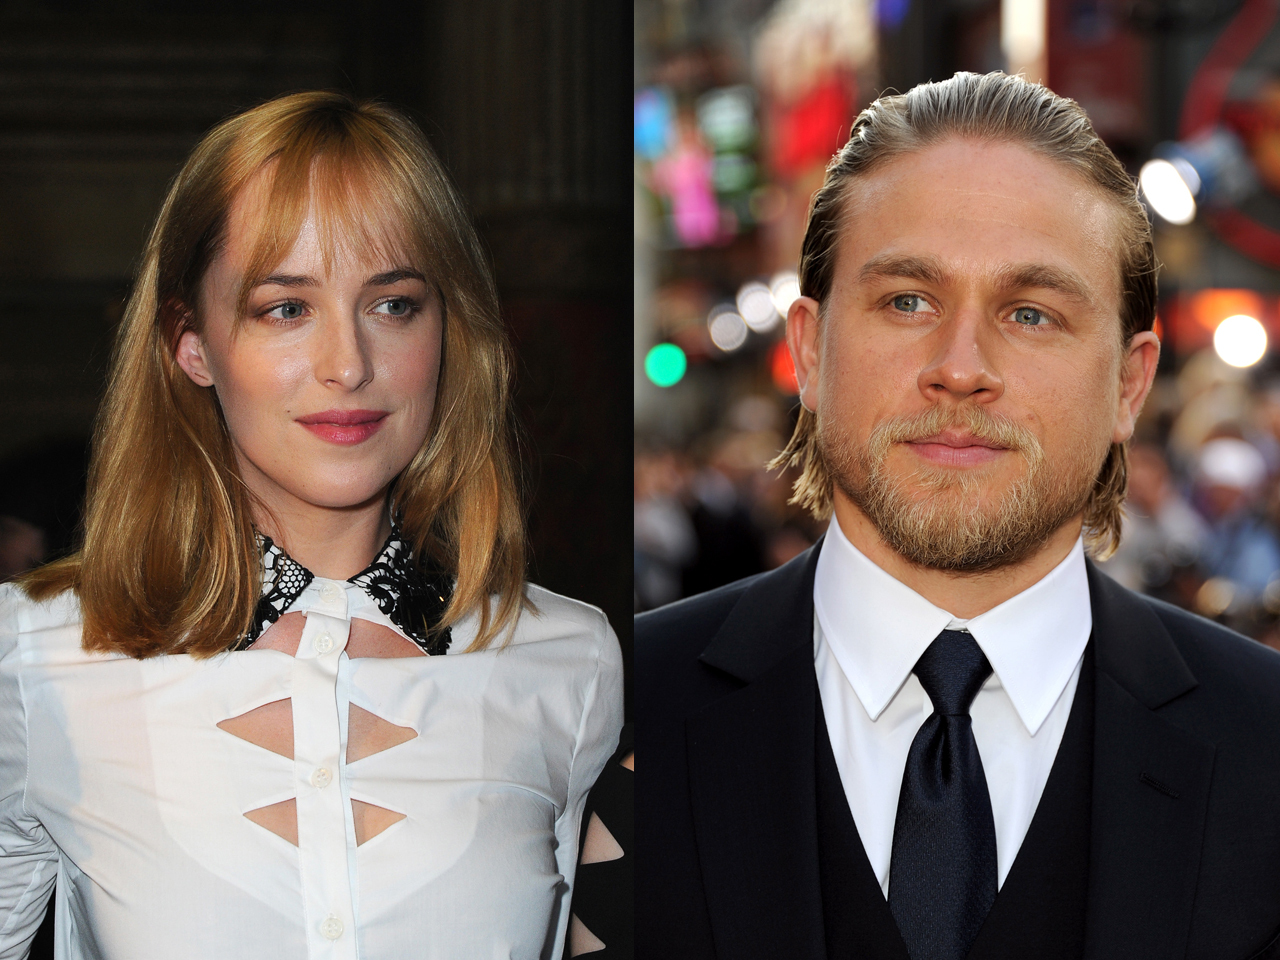 Fans Pe Ion Fifty Shades Of Grey Casting Producer Defends Choices